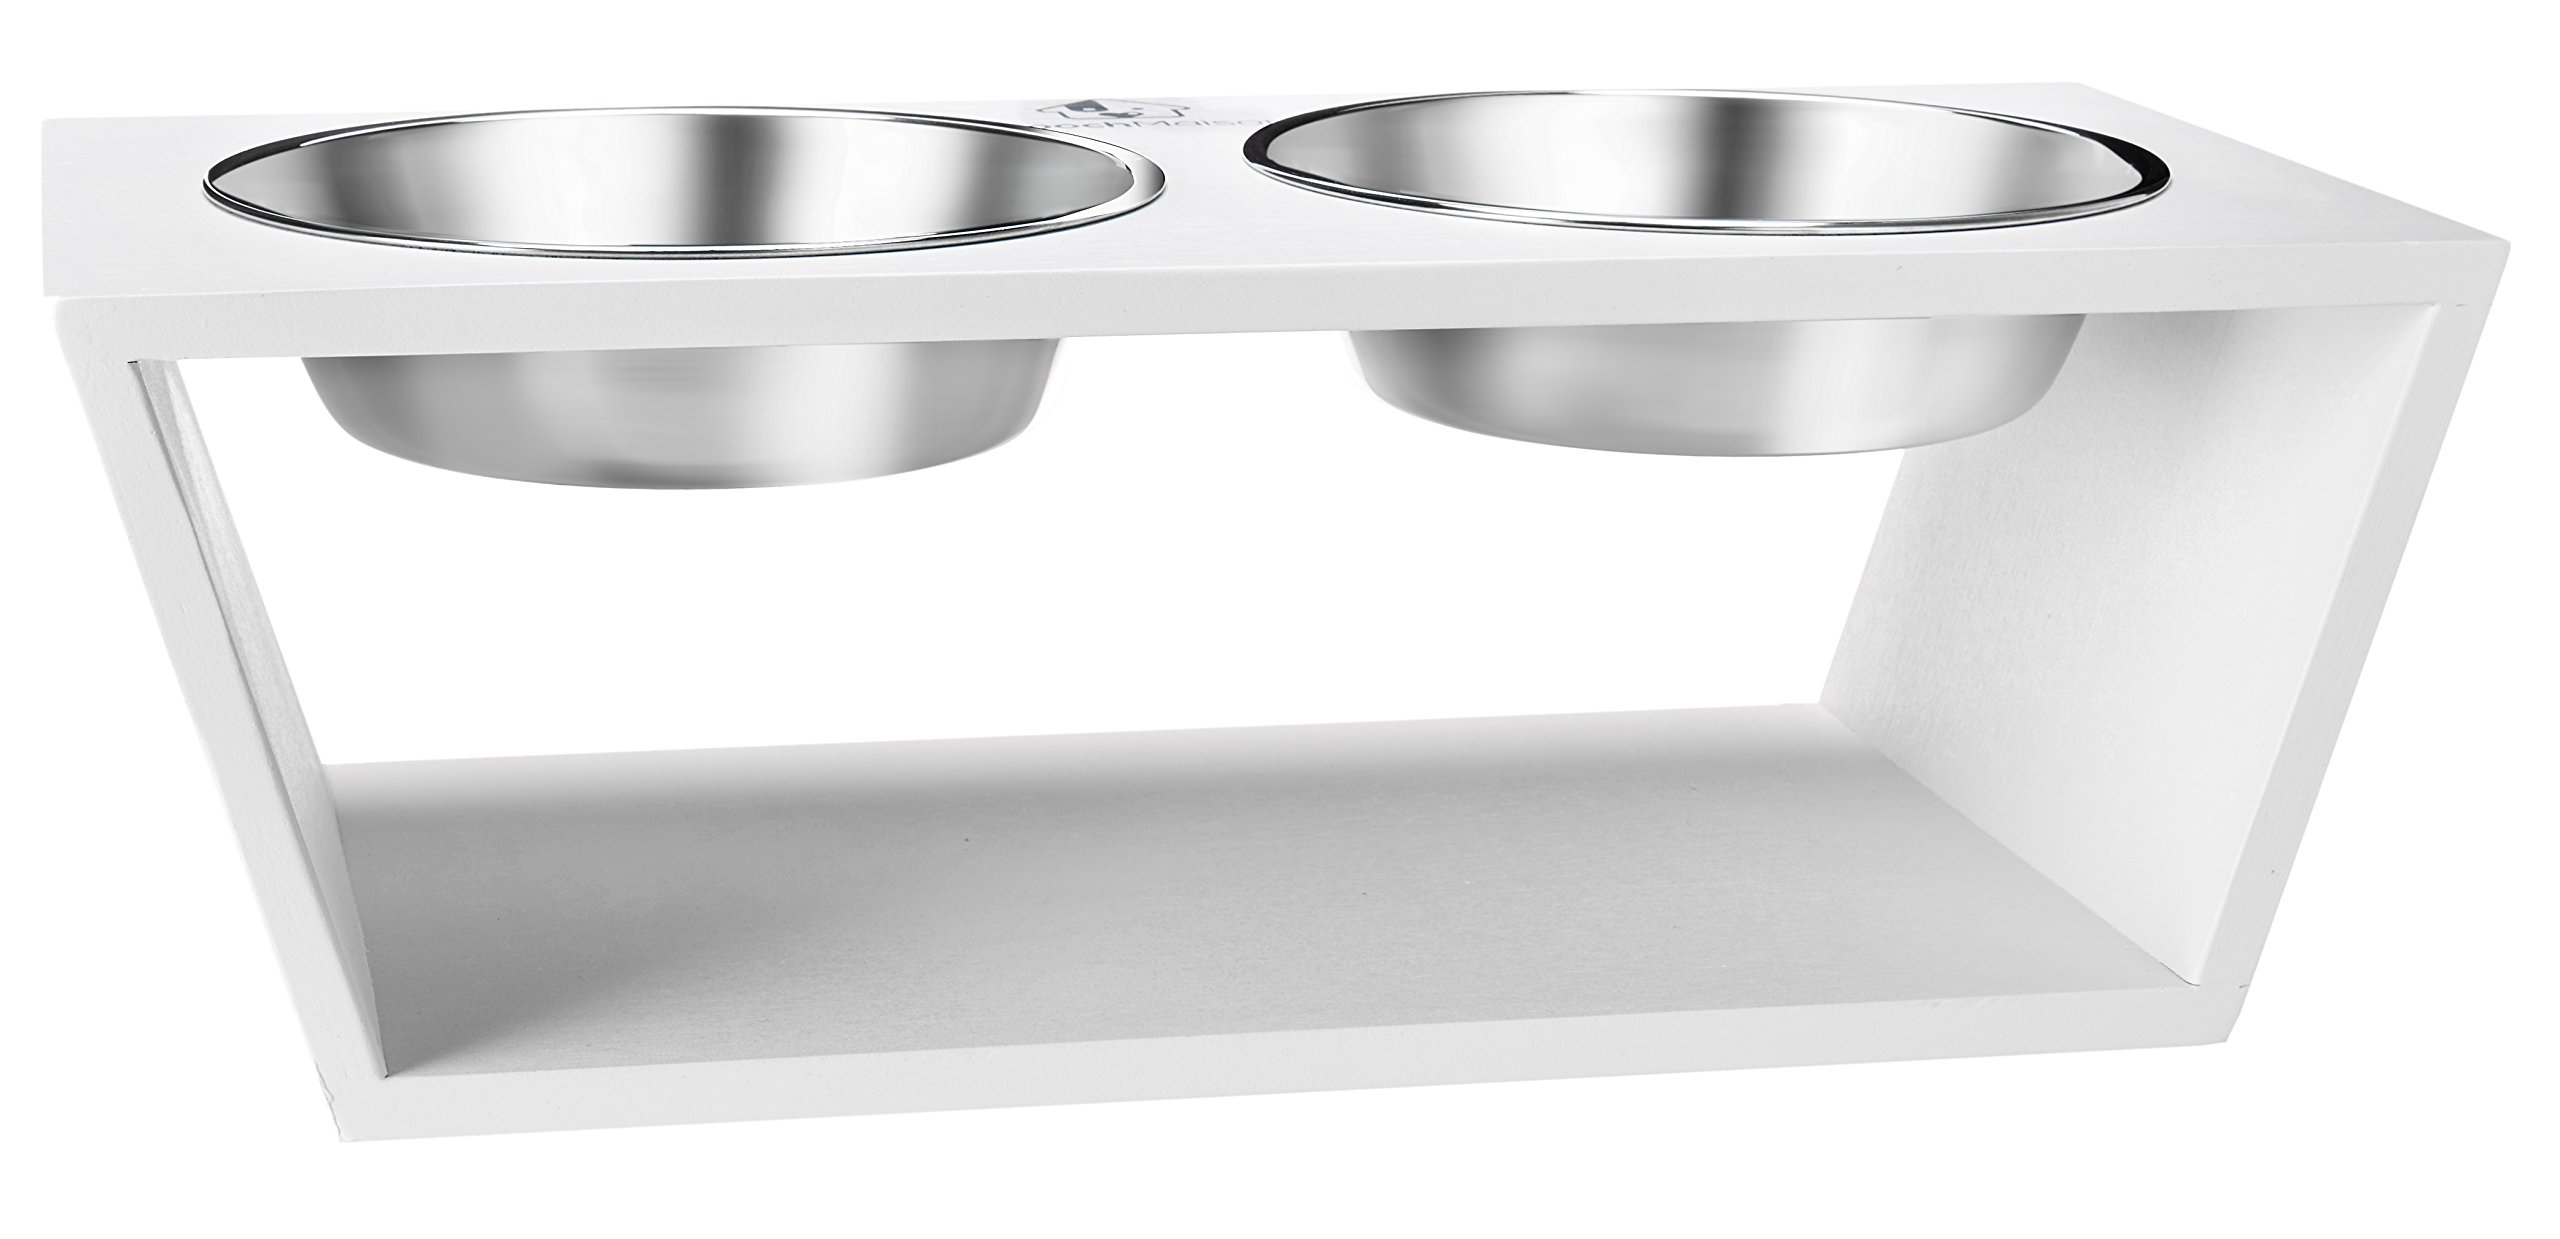 PoochMaison Premium Elevated Double Raised Bowl Stand, Pet Feeder with Two Stainless Steel Bowls. Great for Dogs and Cats. (Medium, White)